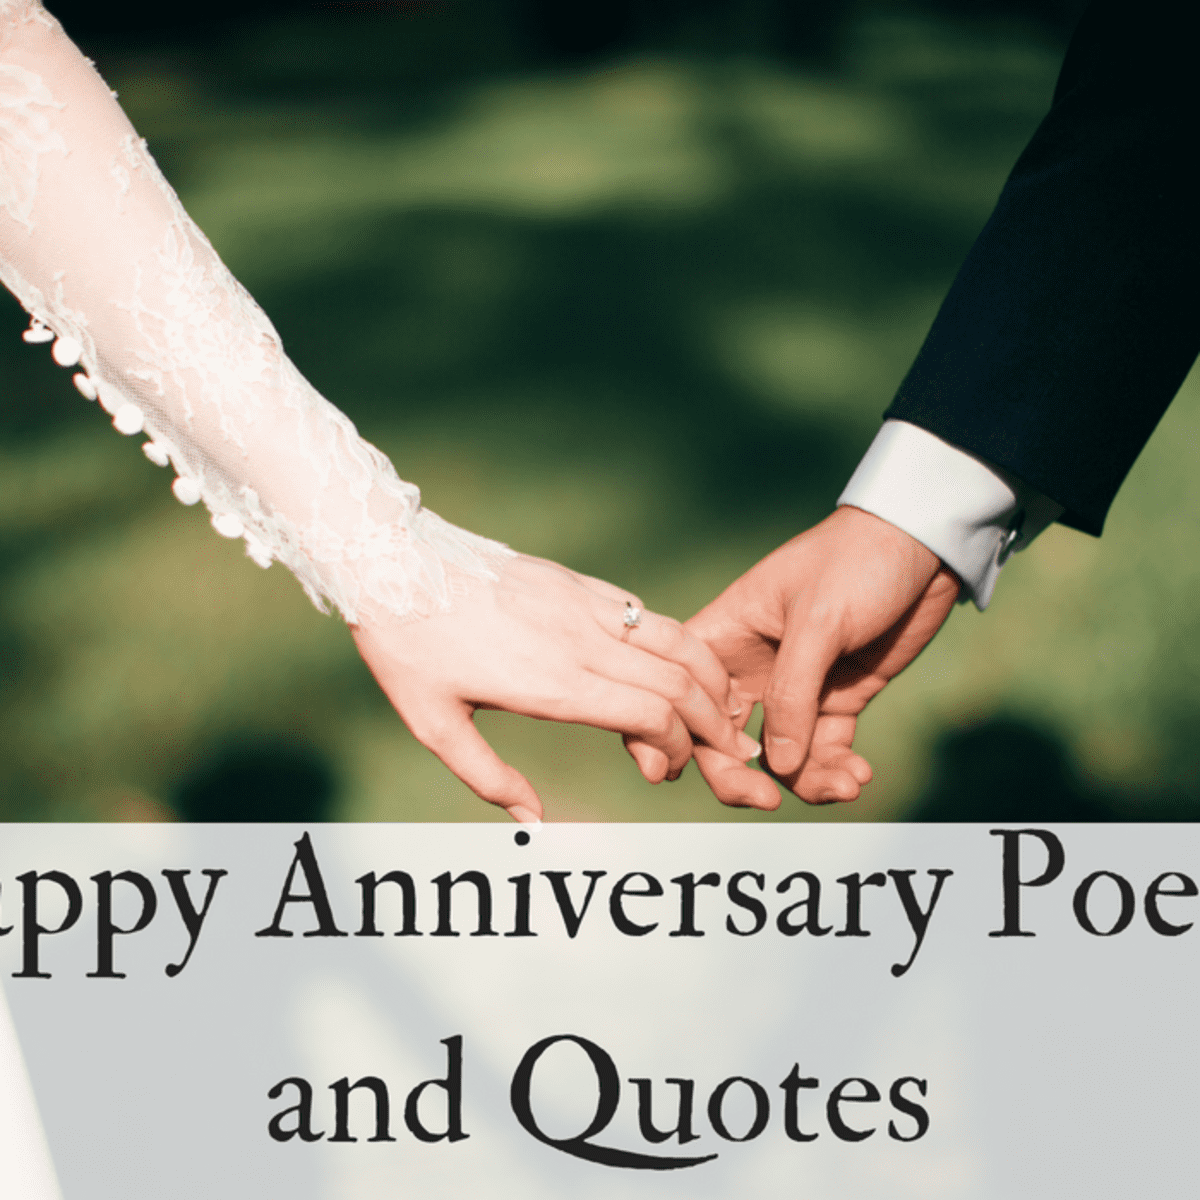 Happy anniversary poems for my girlfriend